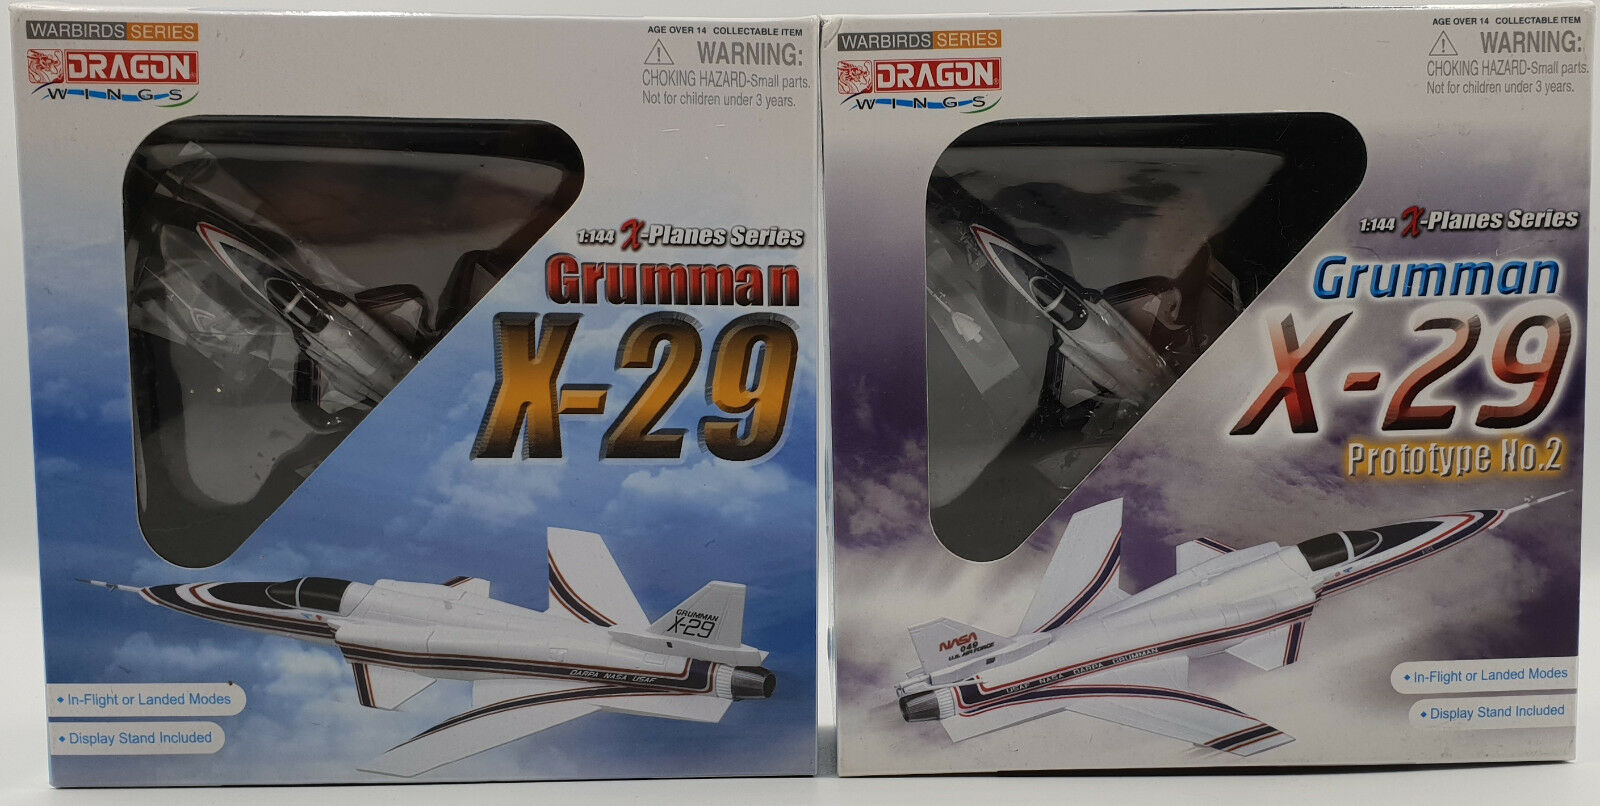 Aviation  Grumhomme  X-29 1 144 scale models. prougeotype Nº 2 Standard (TH)  grande remise